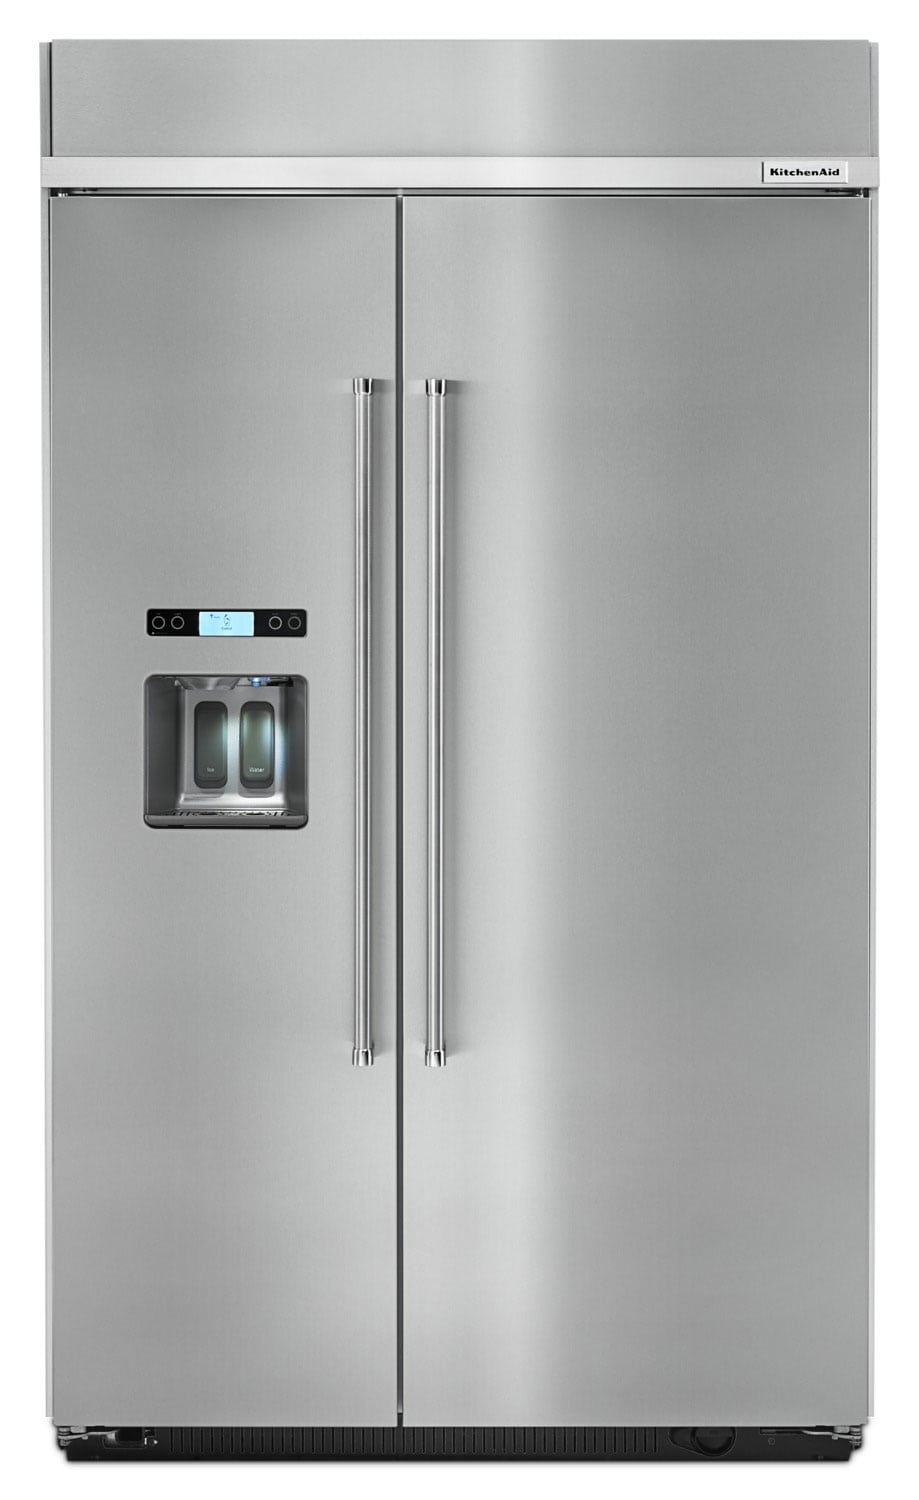 Refrigerators and Freezers - KitchenAid 29.5 Cu. Ft. Built-In Side-by-Side Refrigerator – KBSD618ESS